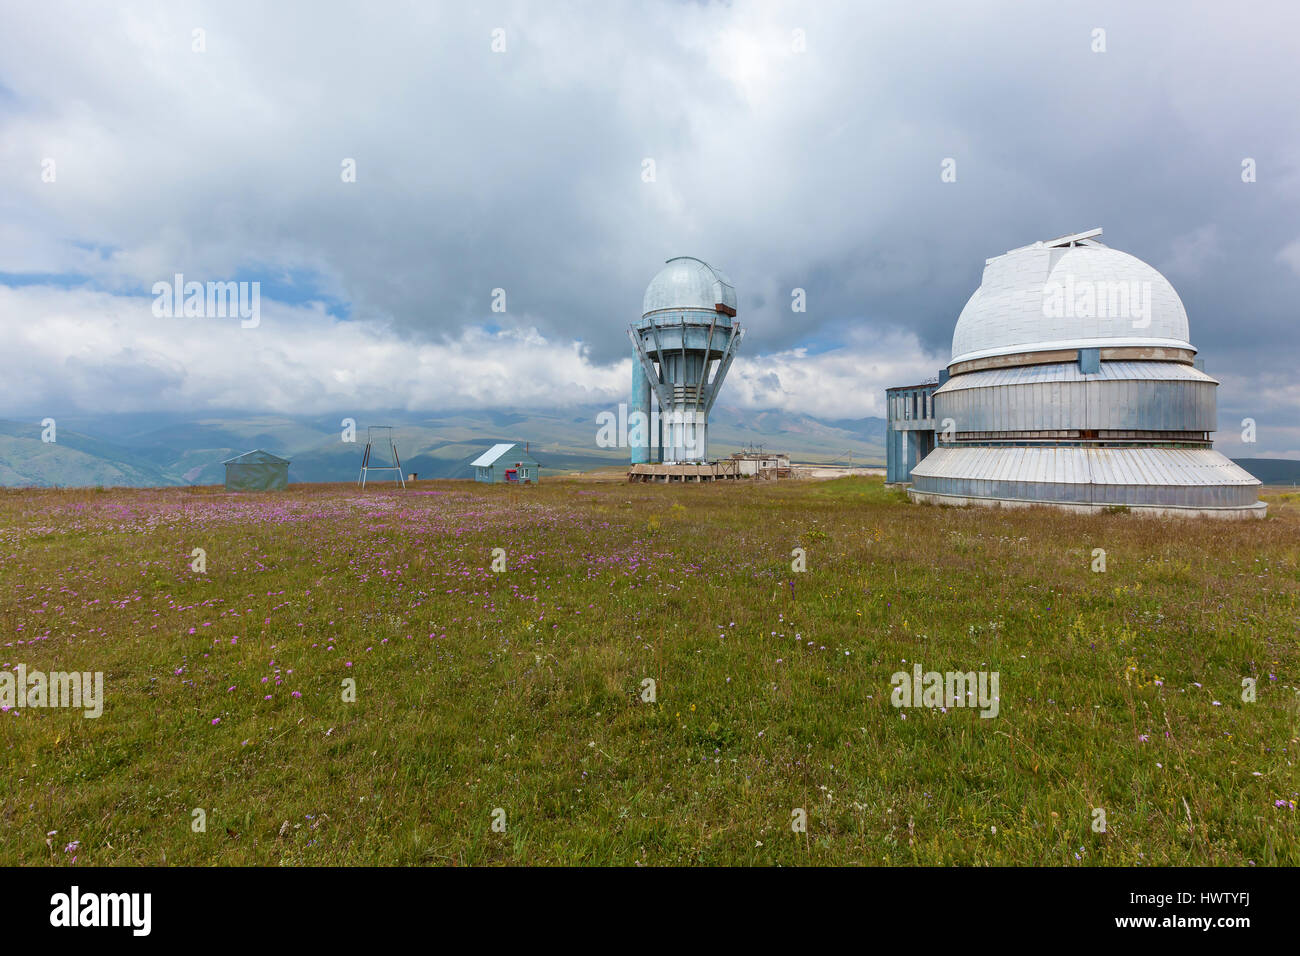 High mountain observatory Assy Plateau in Kazakhstan - Stock Image